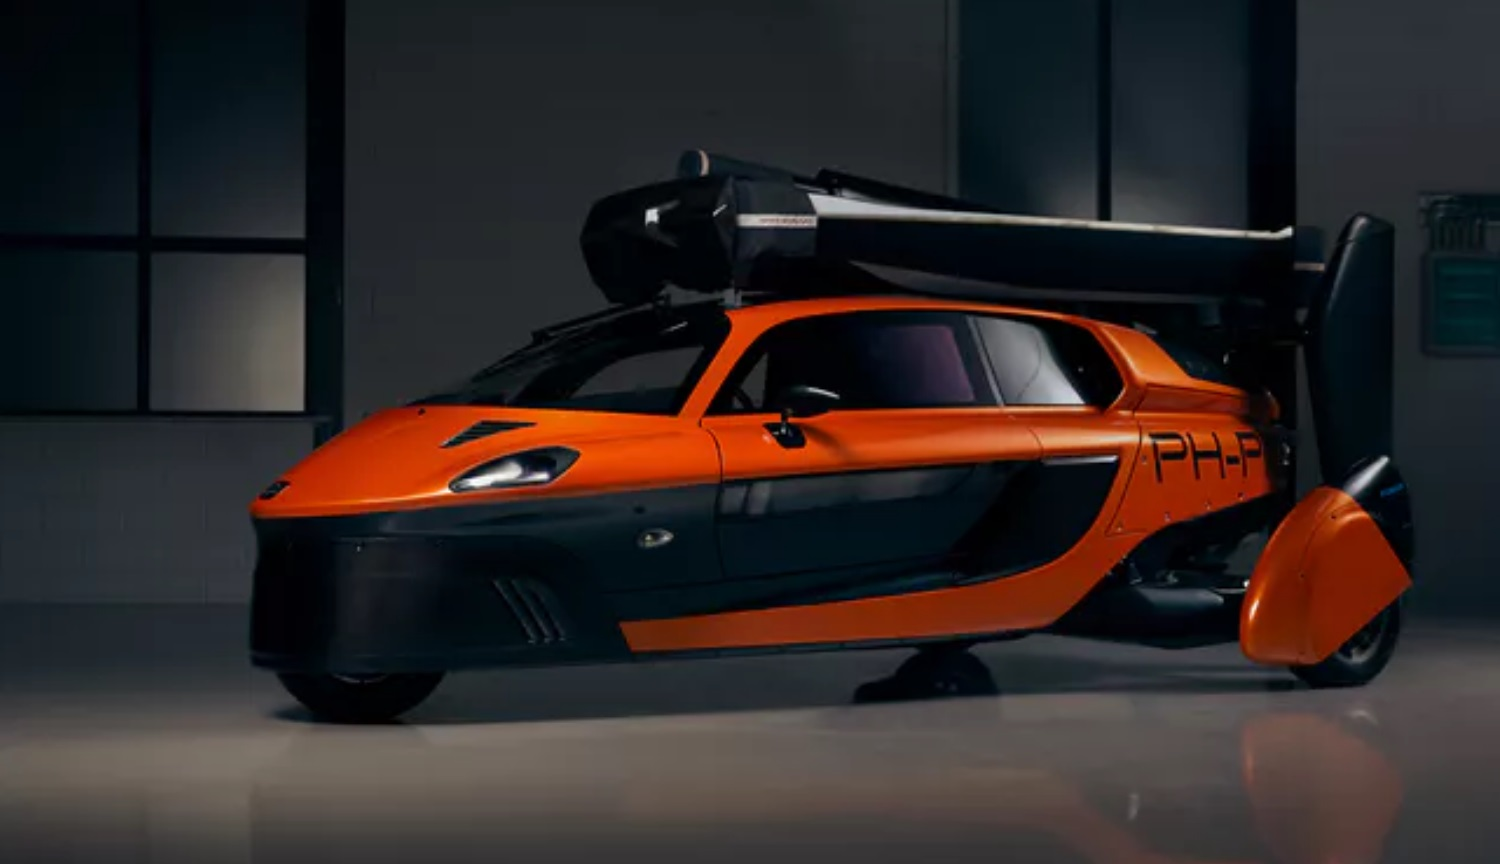 The first production flying car PAL-V concept, but a reality!